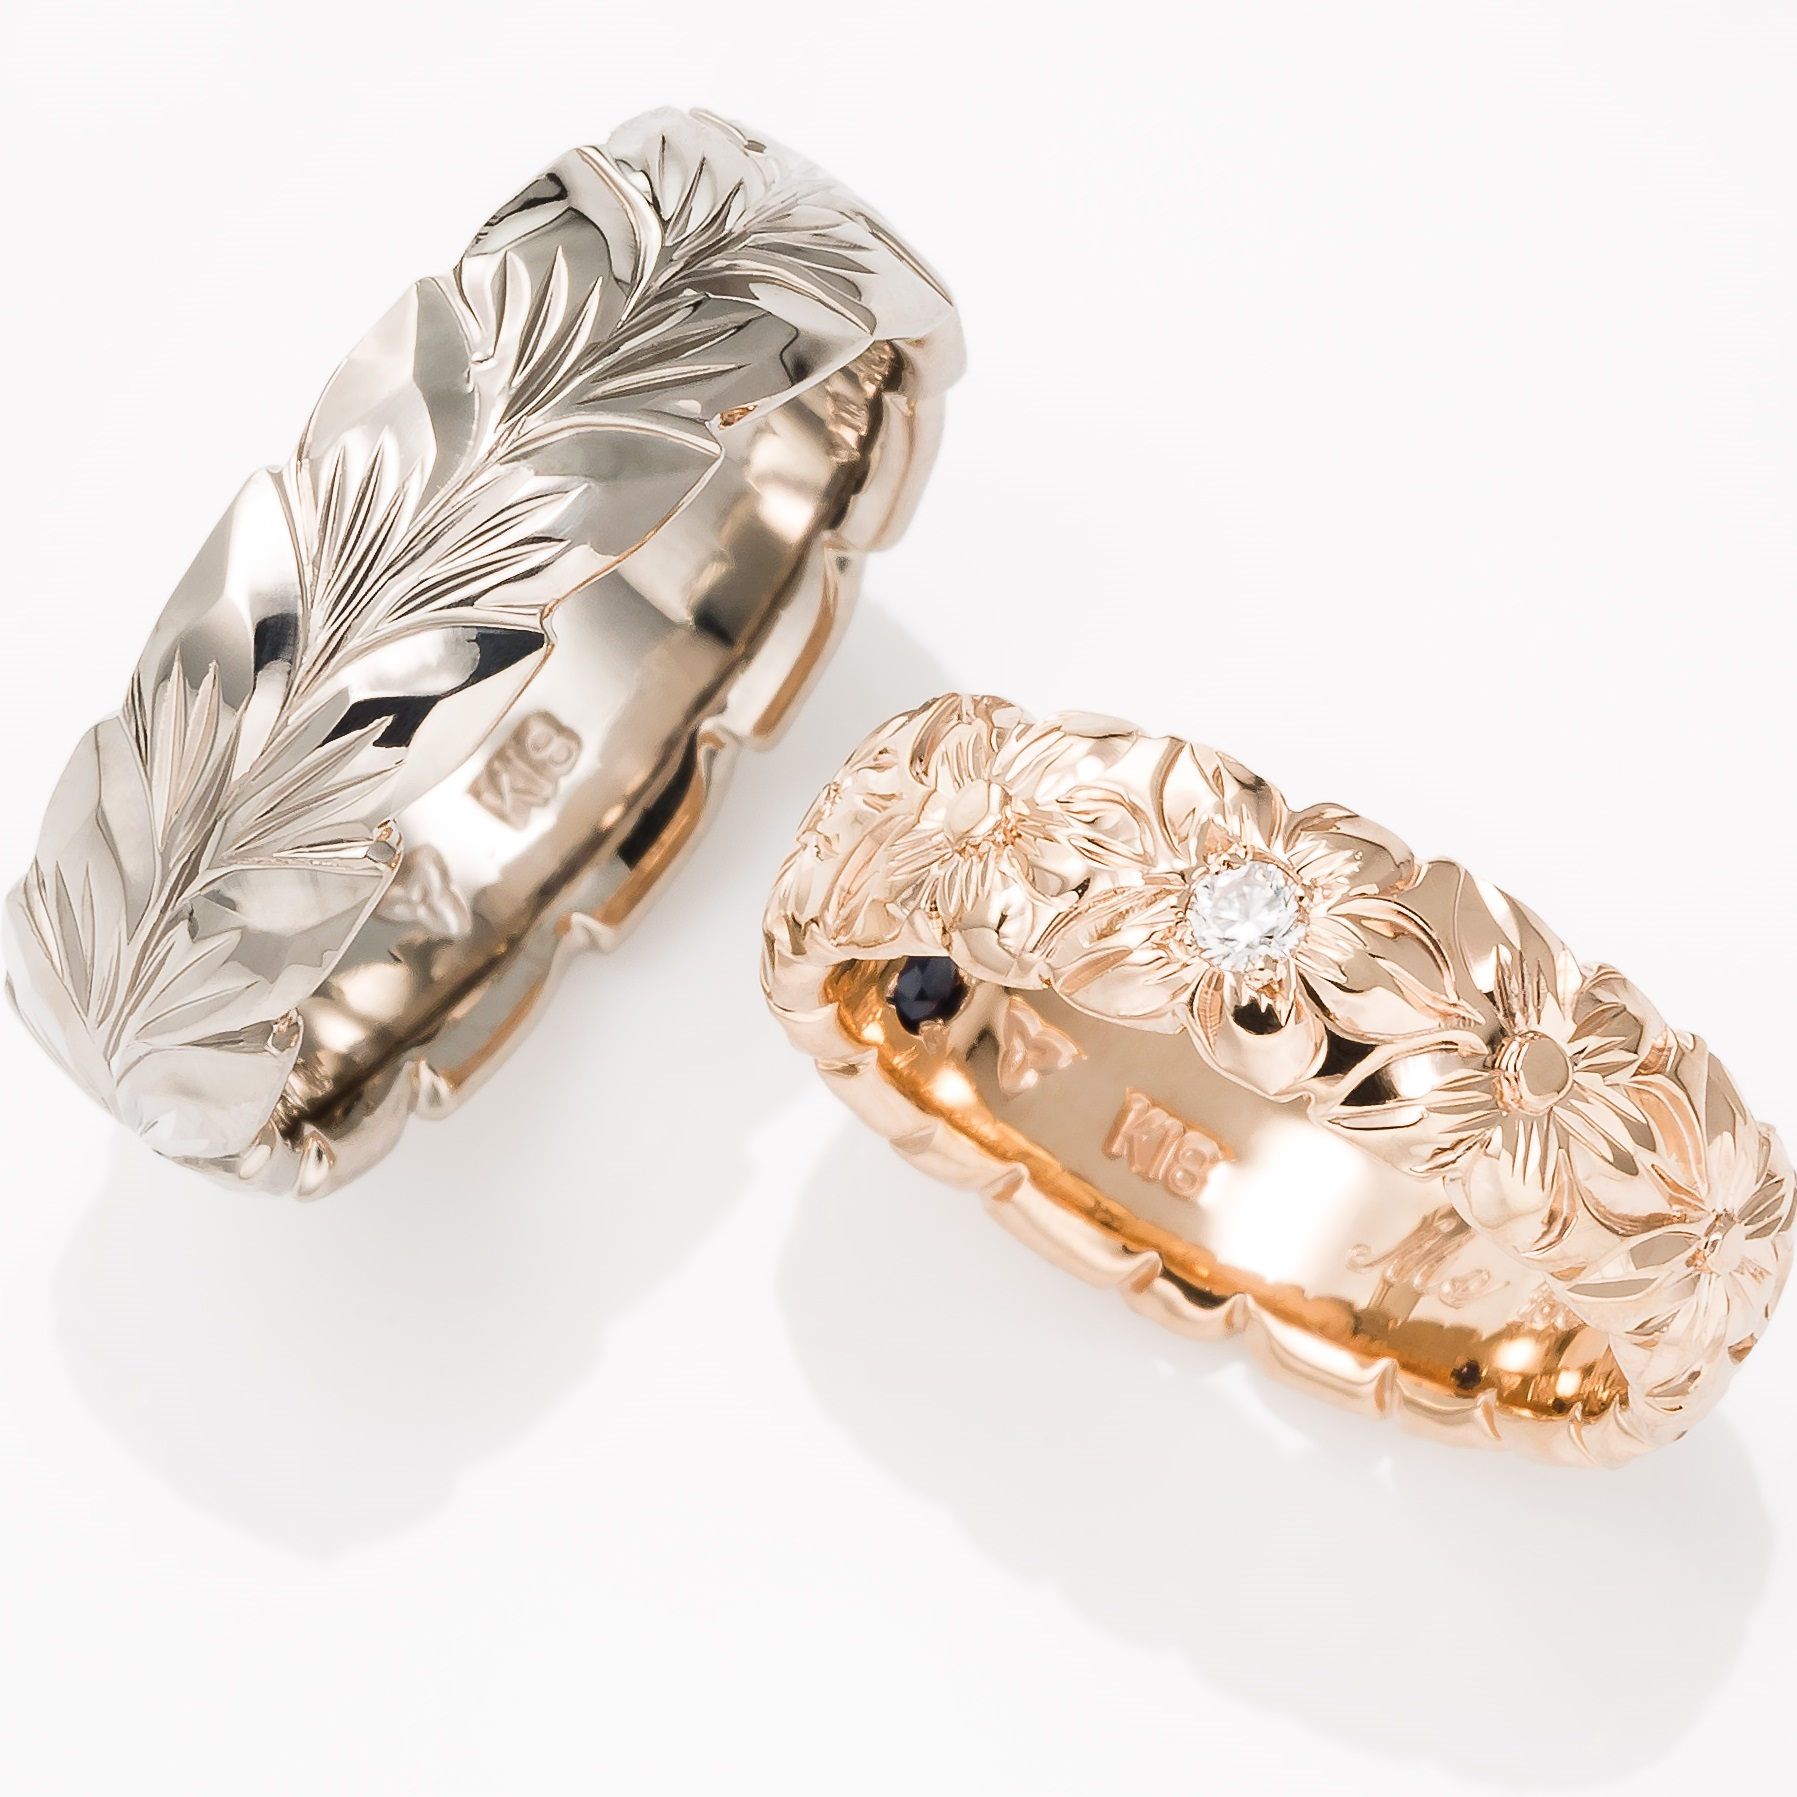 The BEST Customized Wedding Rings In Singapore At VENUS TEARS @ Jem,  Tampines1 And Bugis Junction!